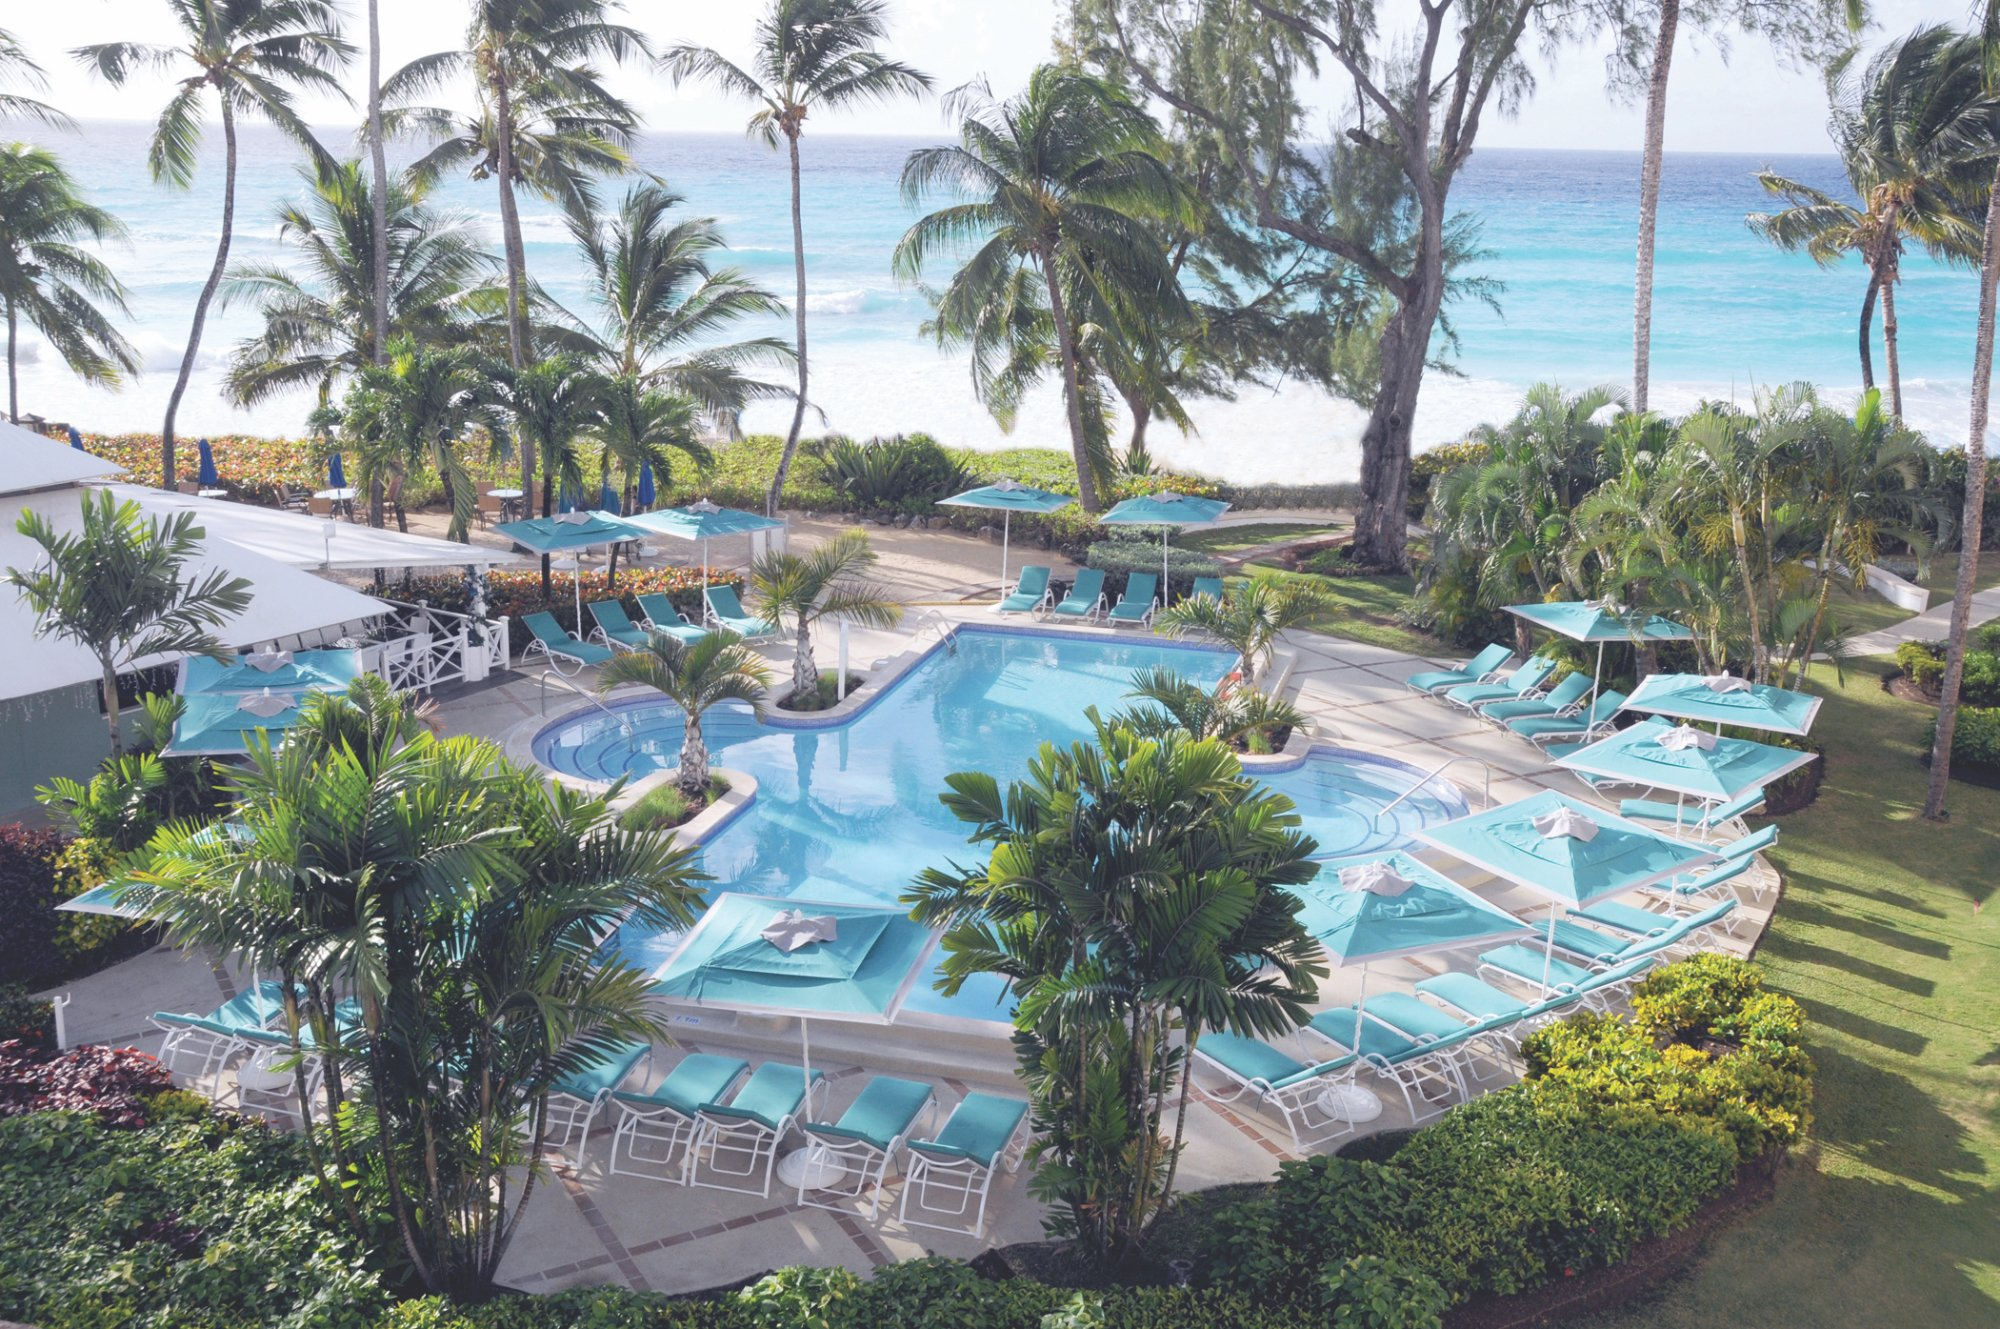 Turtle Beach By Elegant Hotels Updated 2017 Prices Amp Resort All Inclusive Reviews Barbados